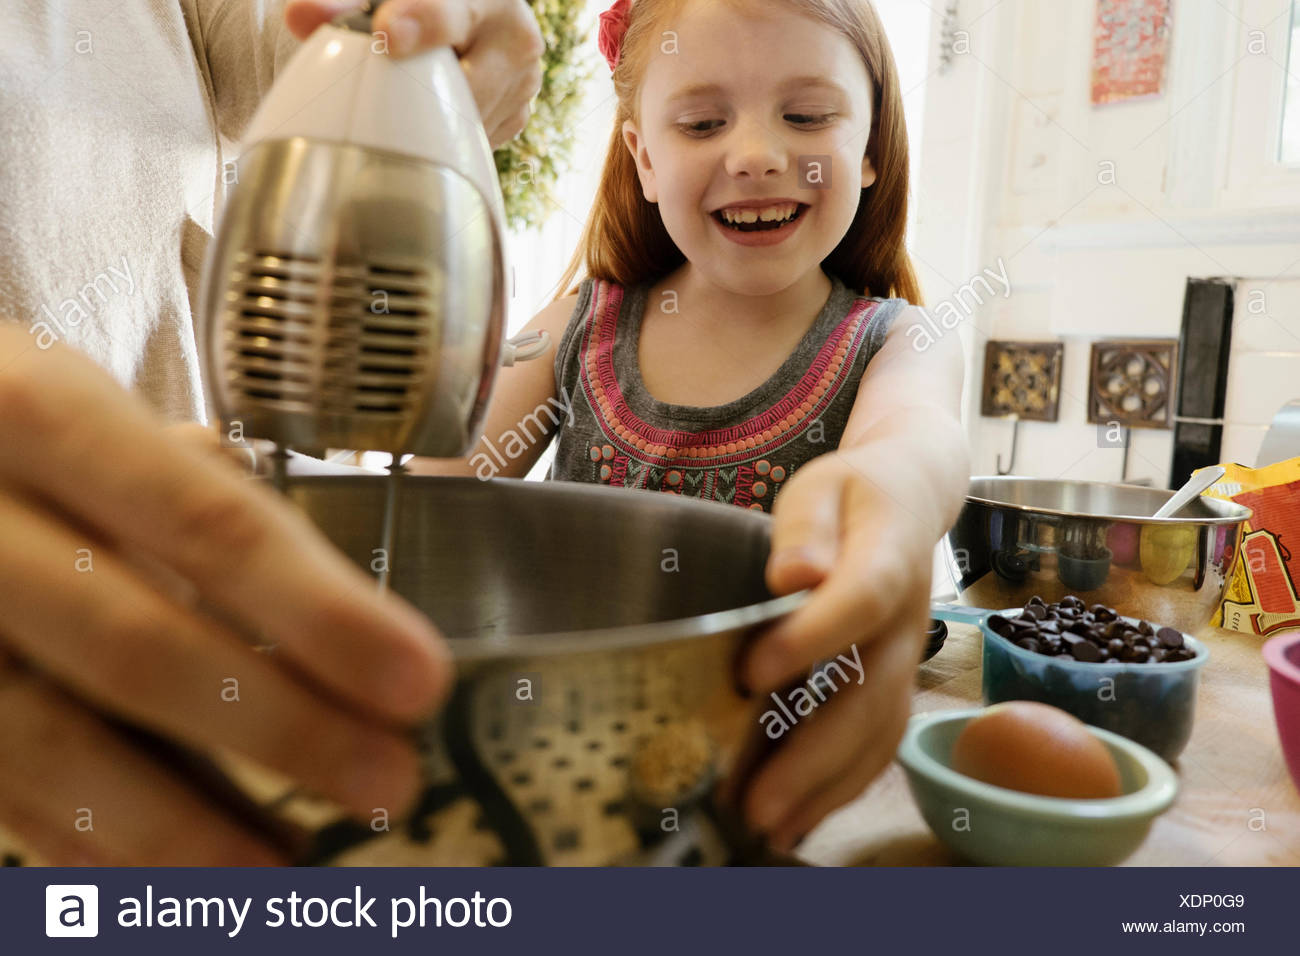 Girl giving mother a helping hand in kitchen - Stock Image